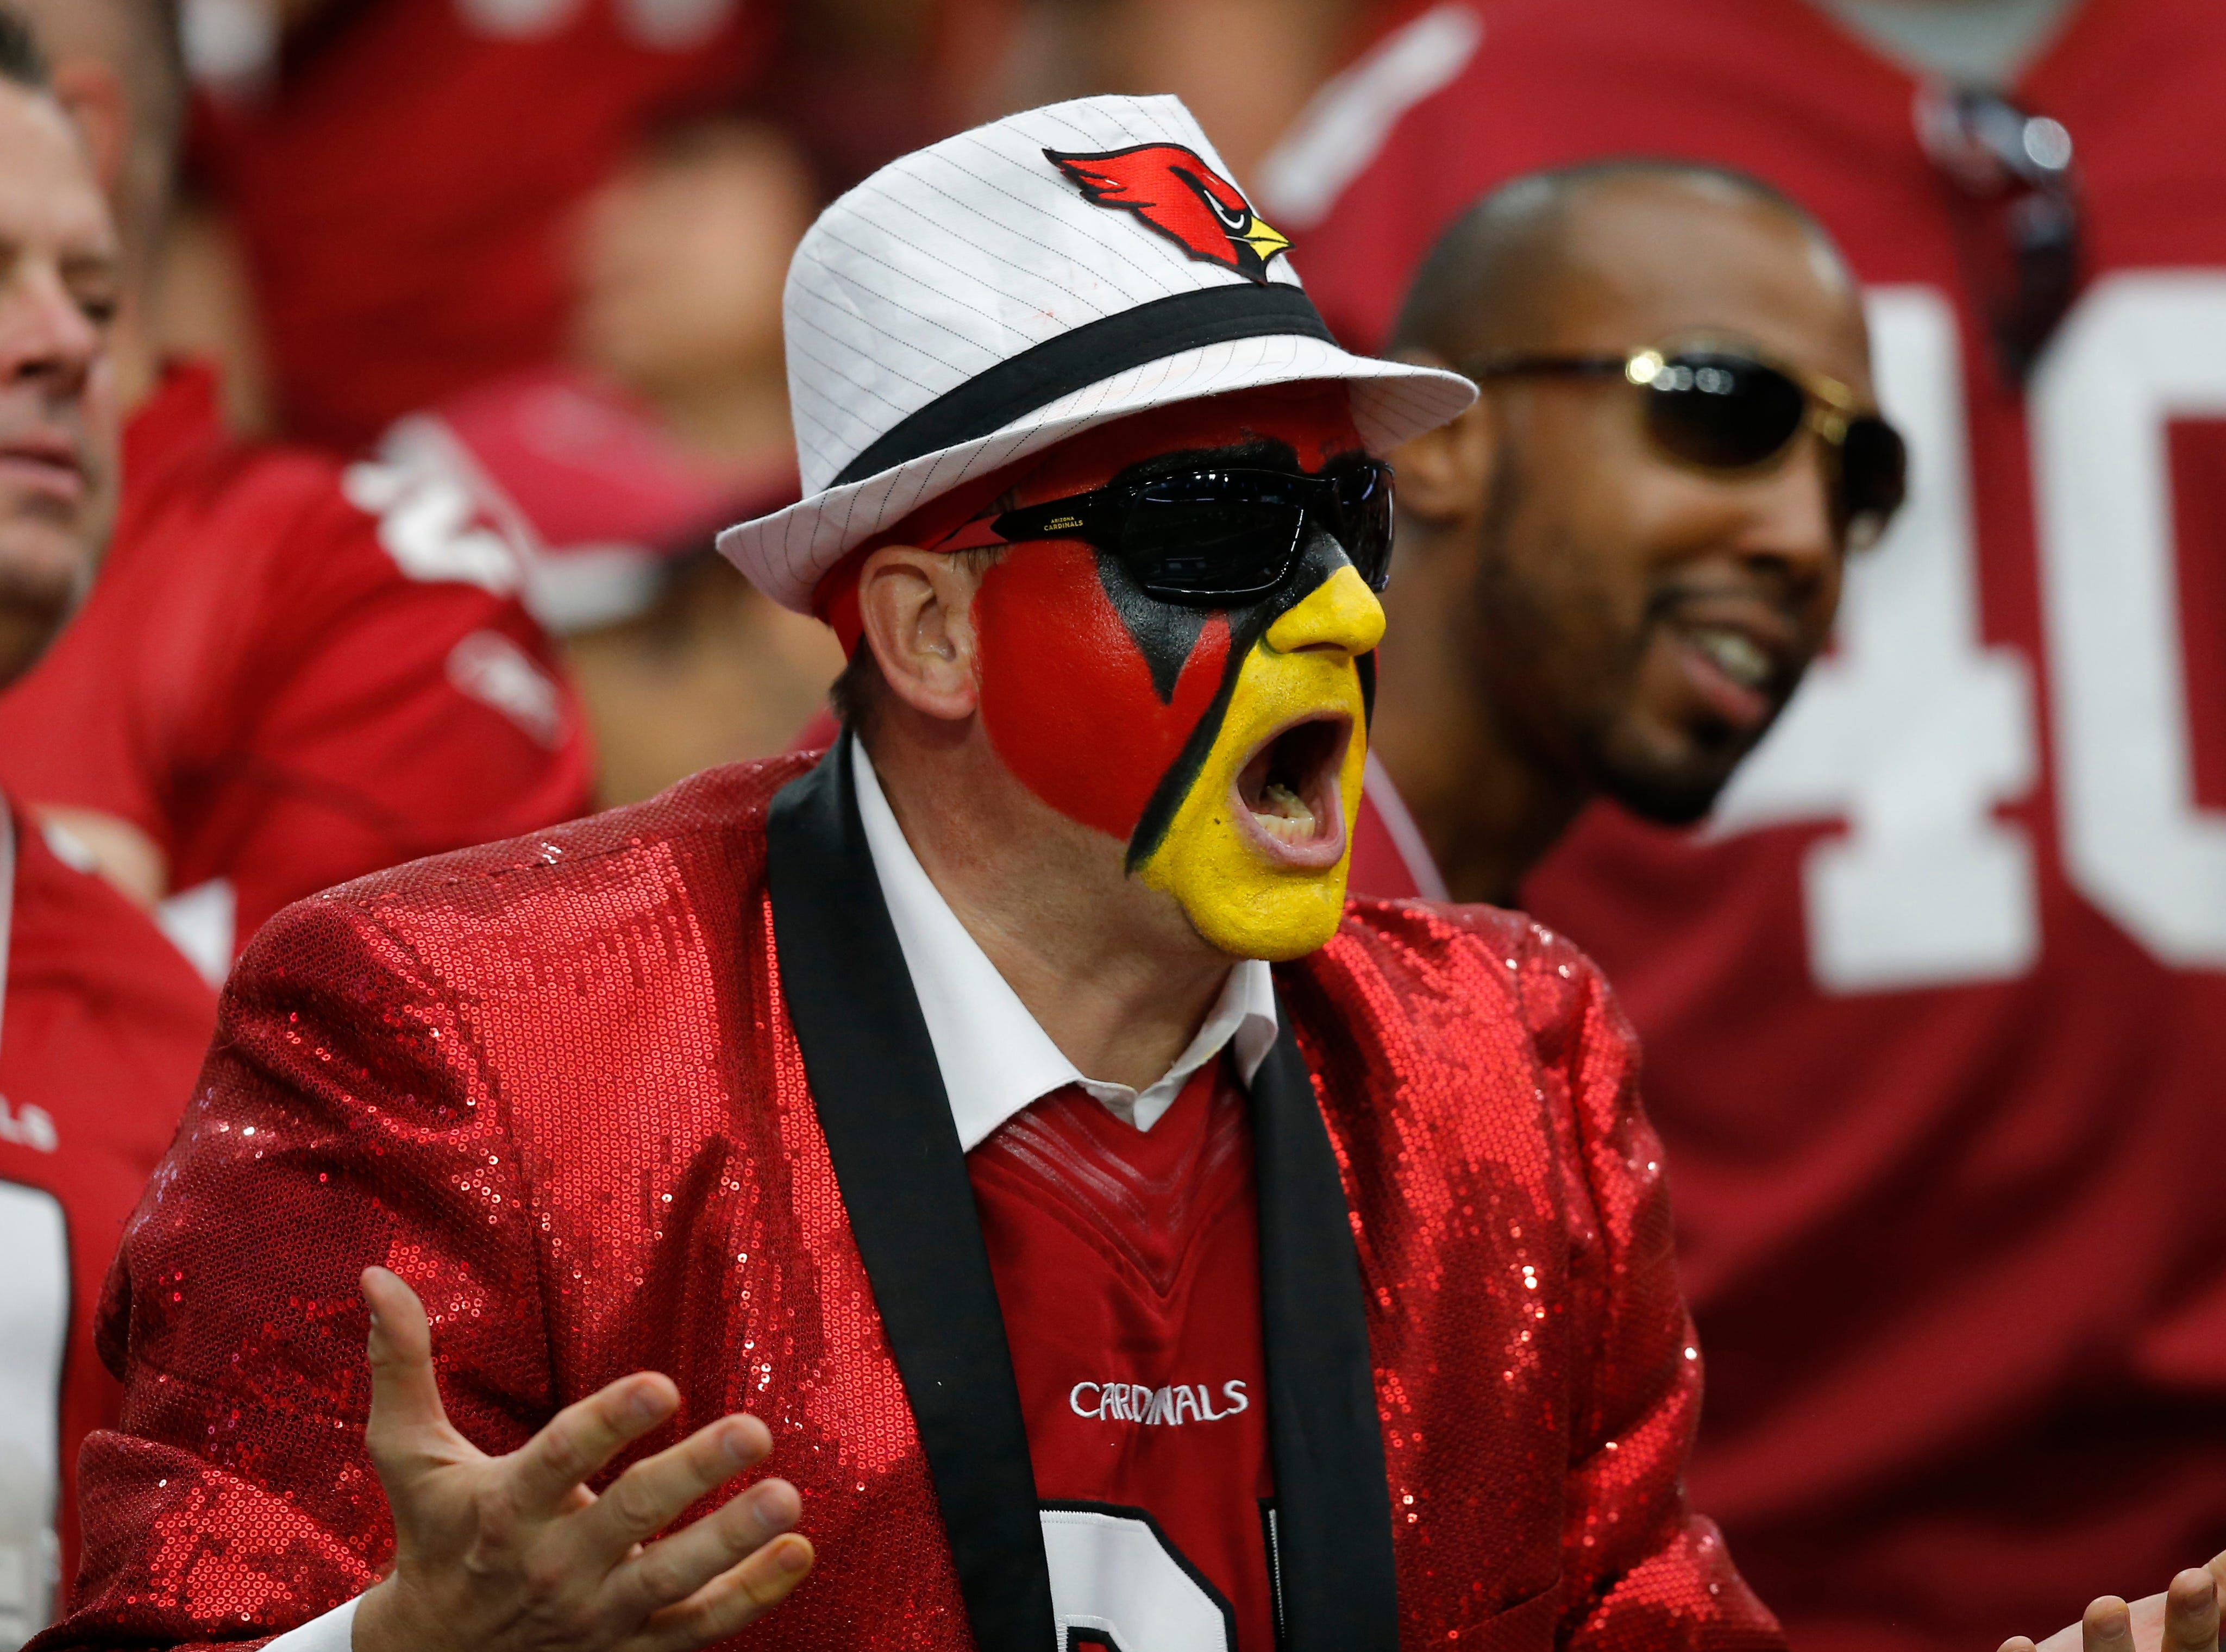 An Arizona Cardinals fan cheers during the first half of an NFL football game against the Washington Redskins, Sunday, Sept. 9, 2018, in Glendale, Ariz.